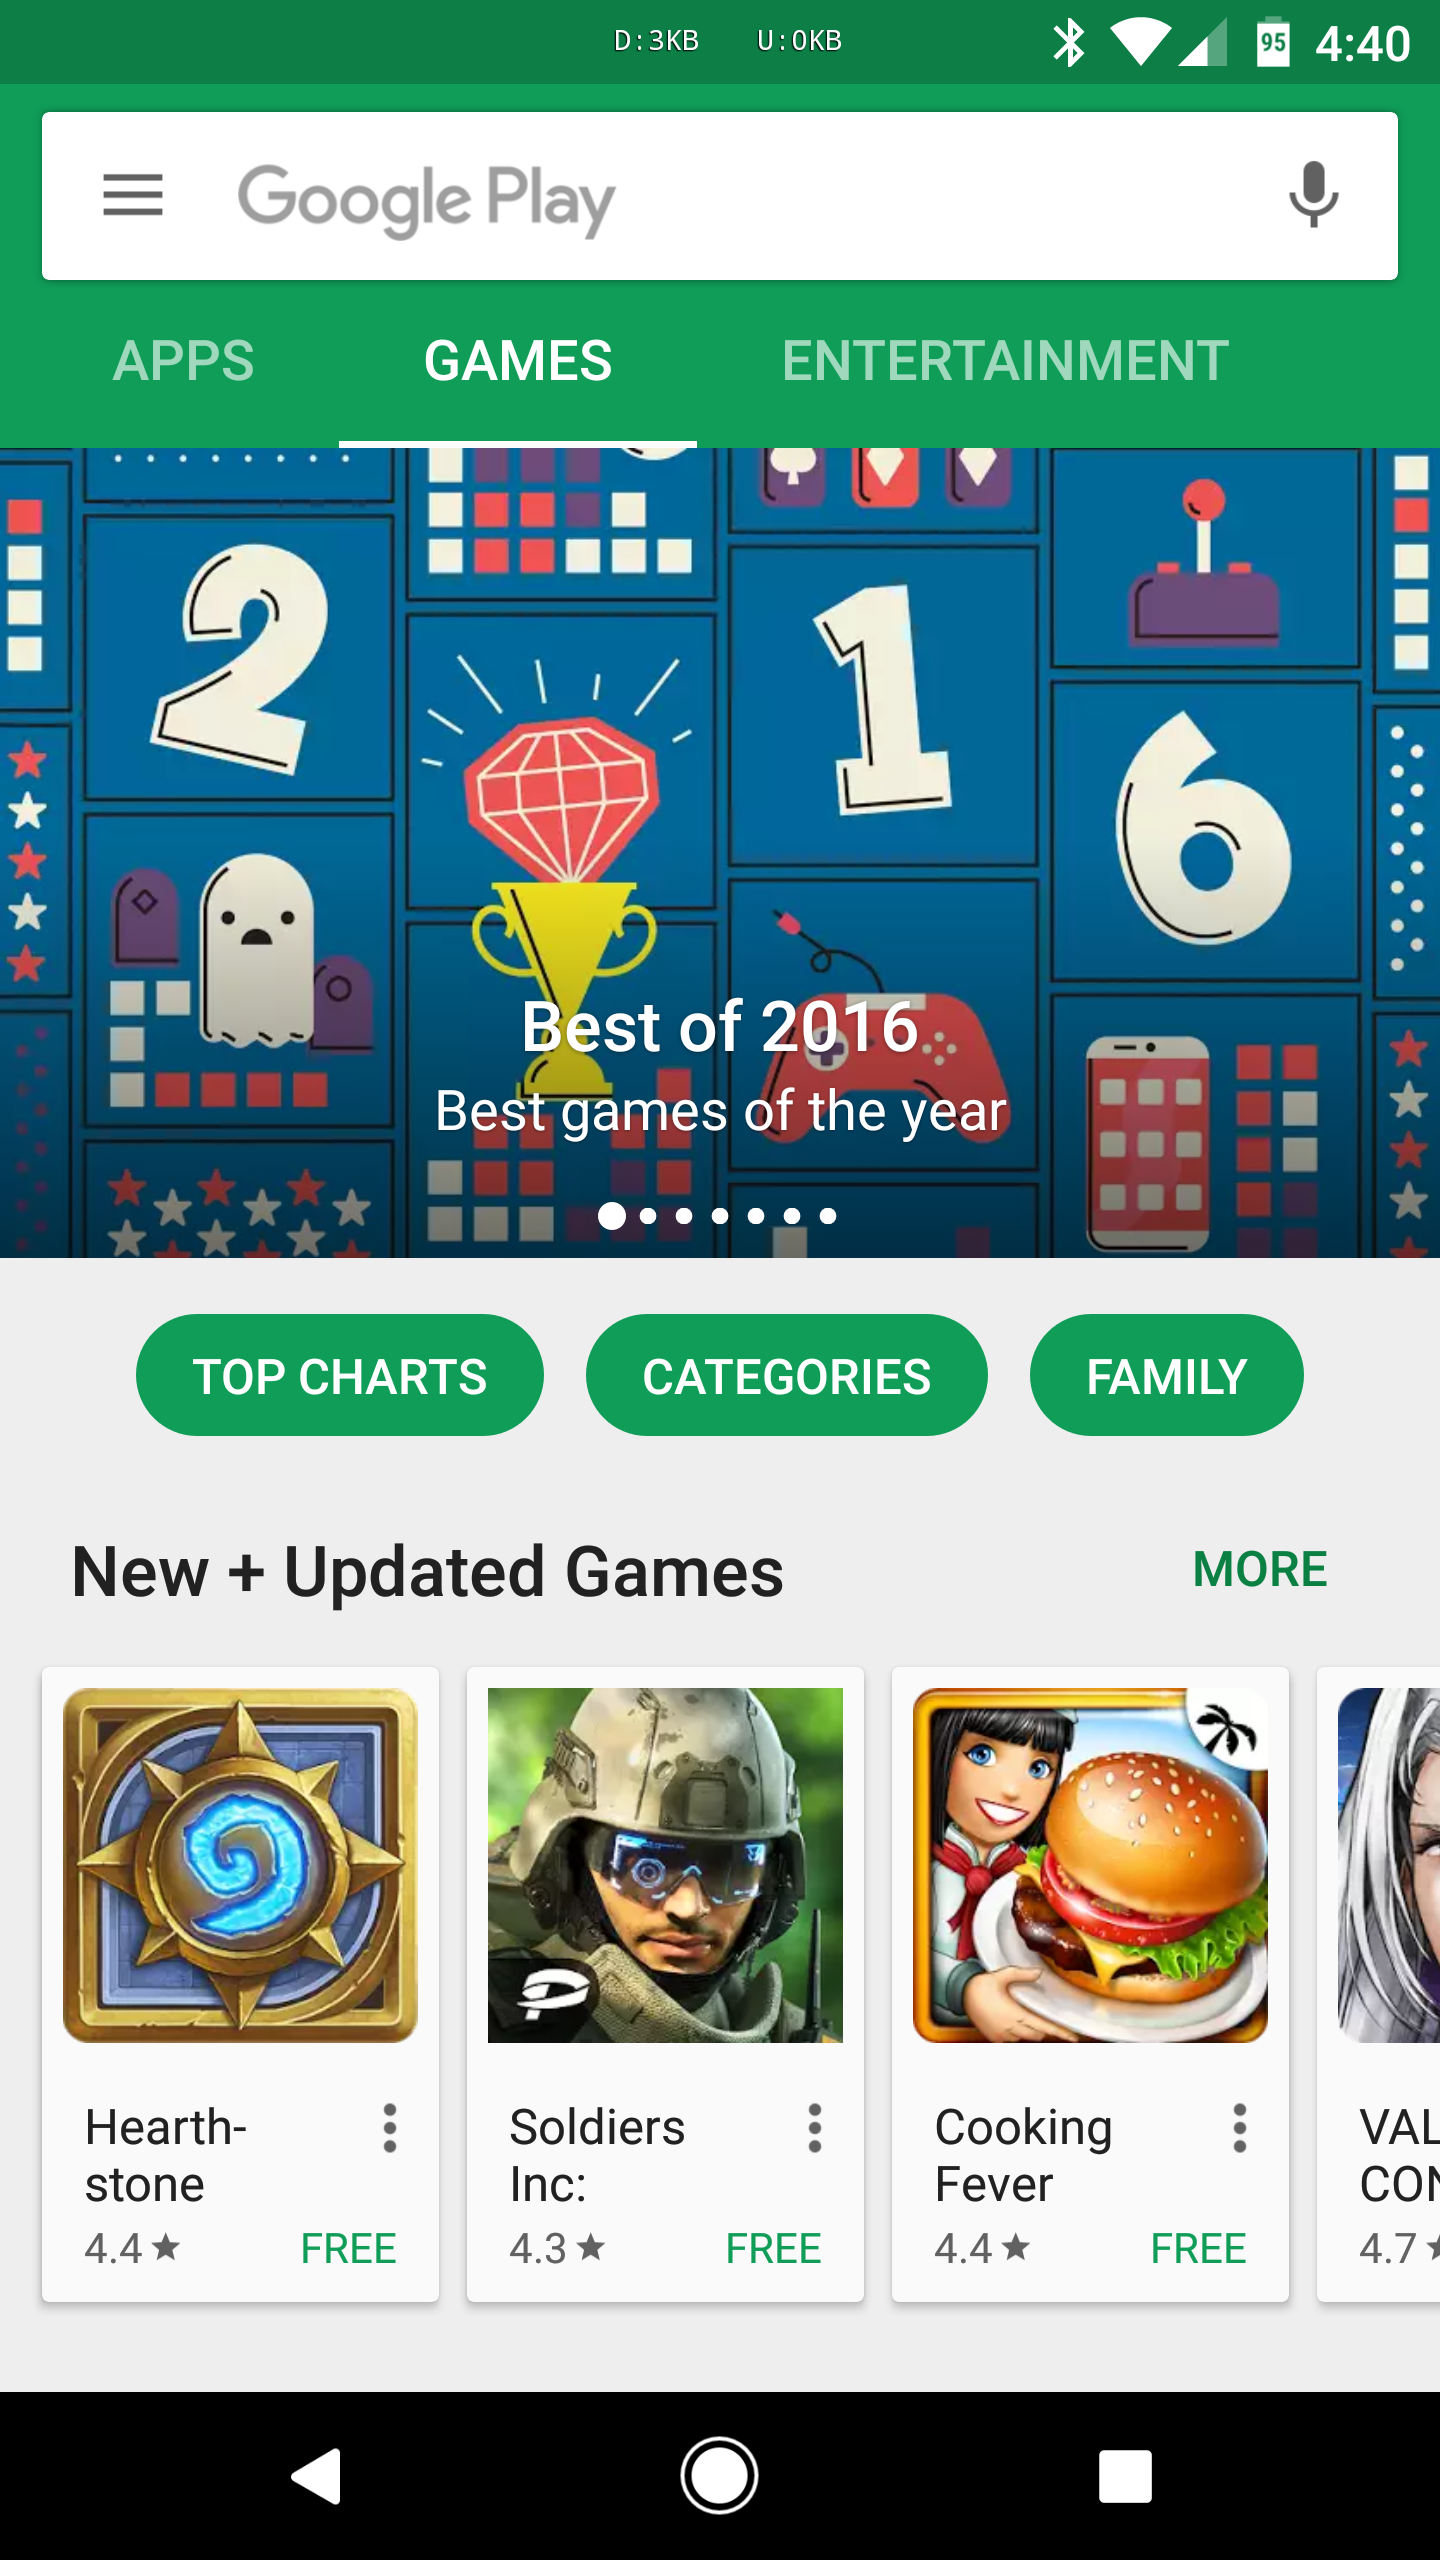 Google Play Finally Debuts New Categories of Games